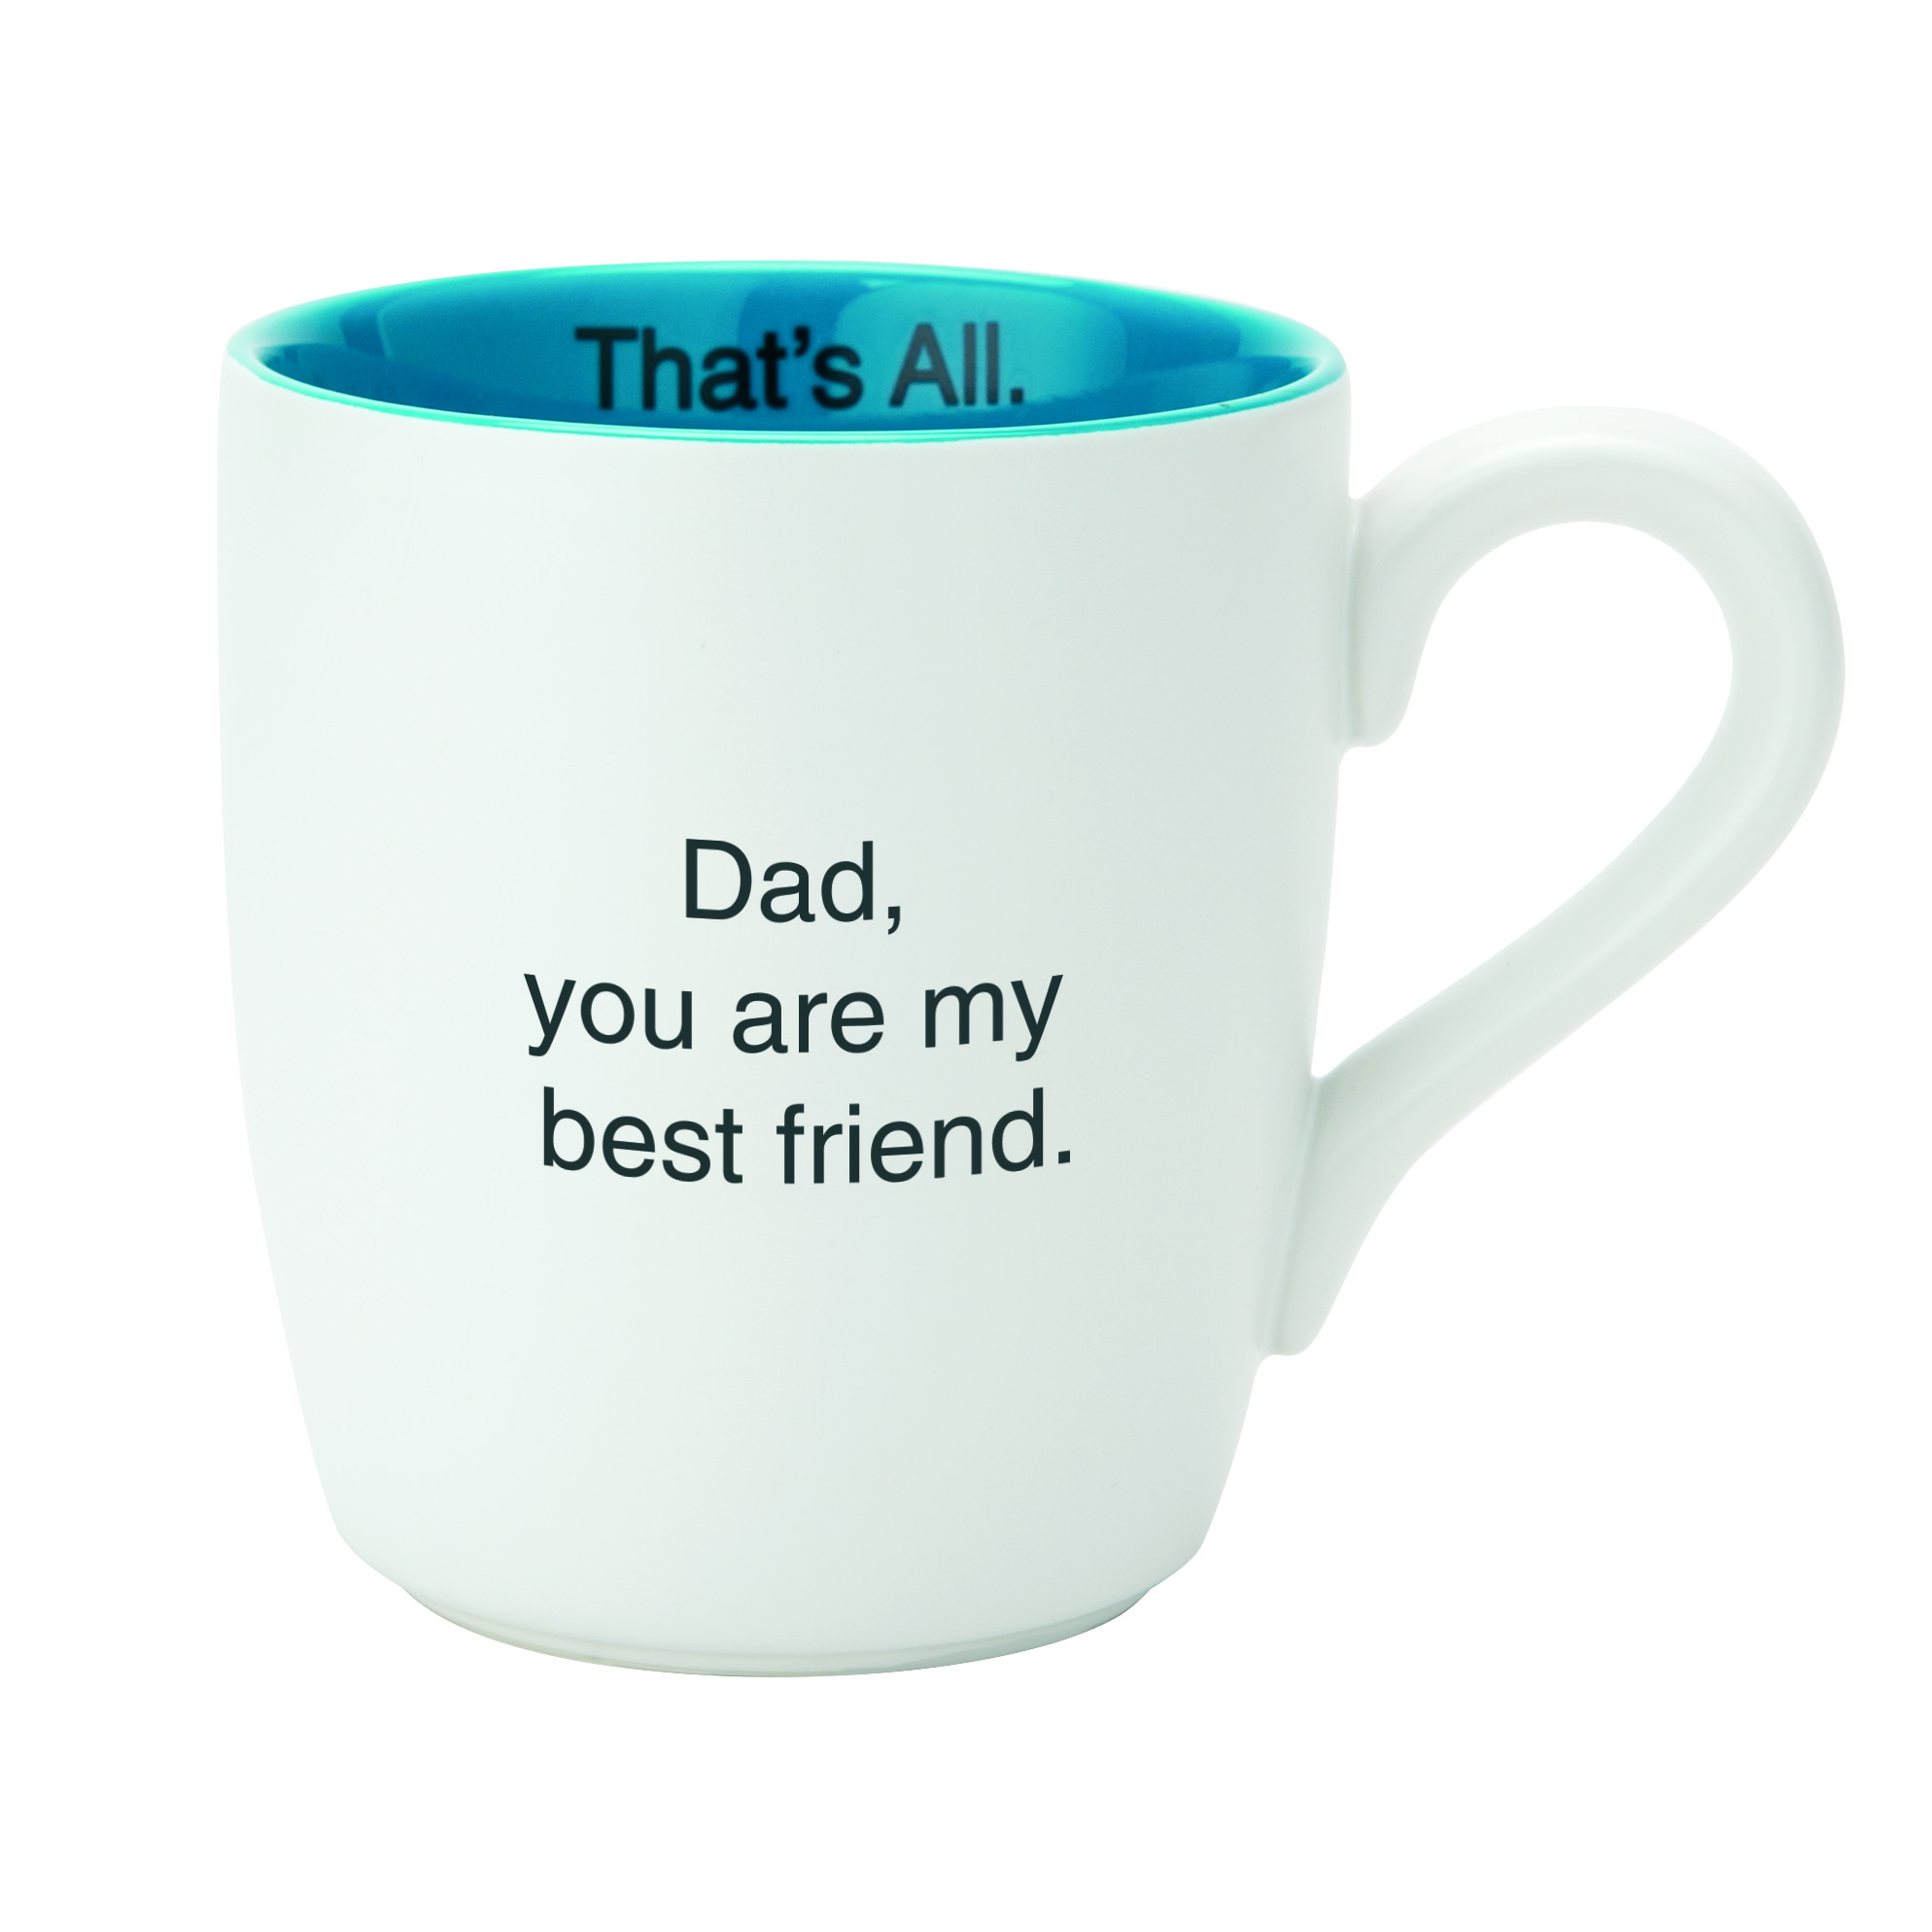 That's All® Mug - Dad You're My Best Friend